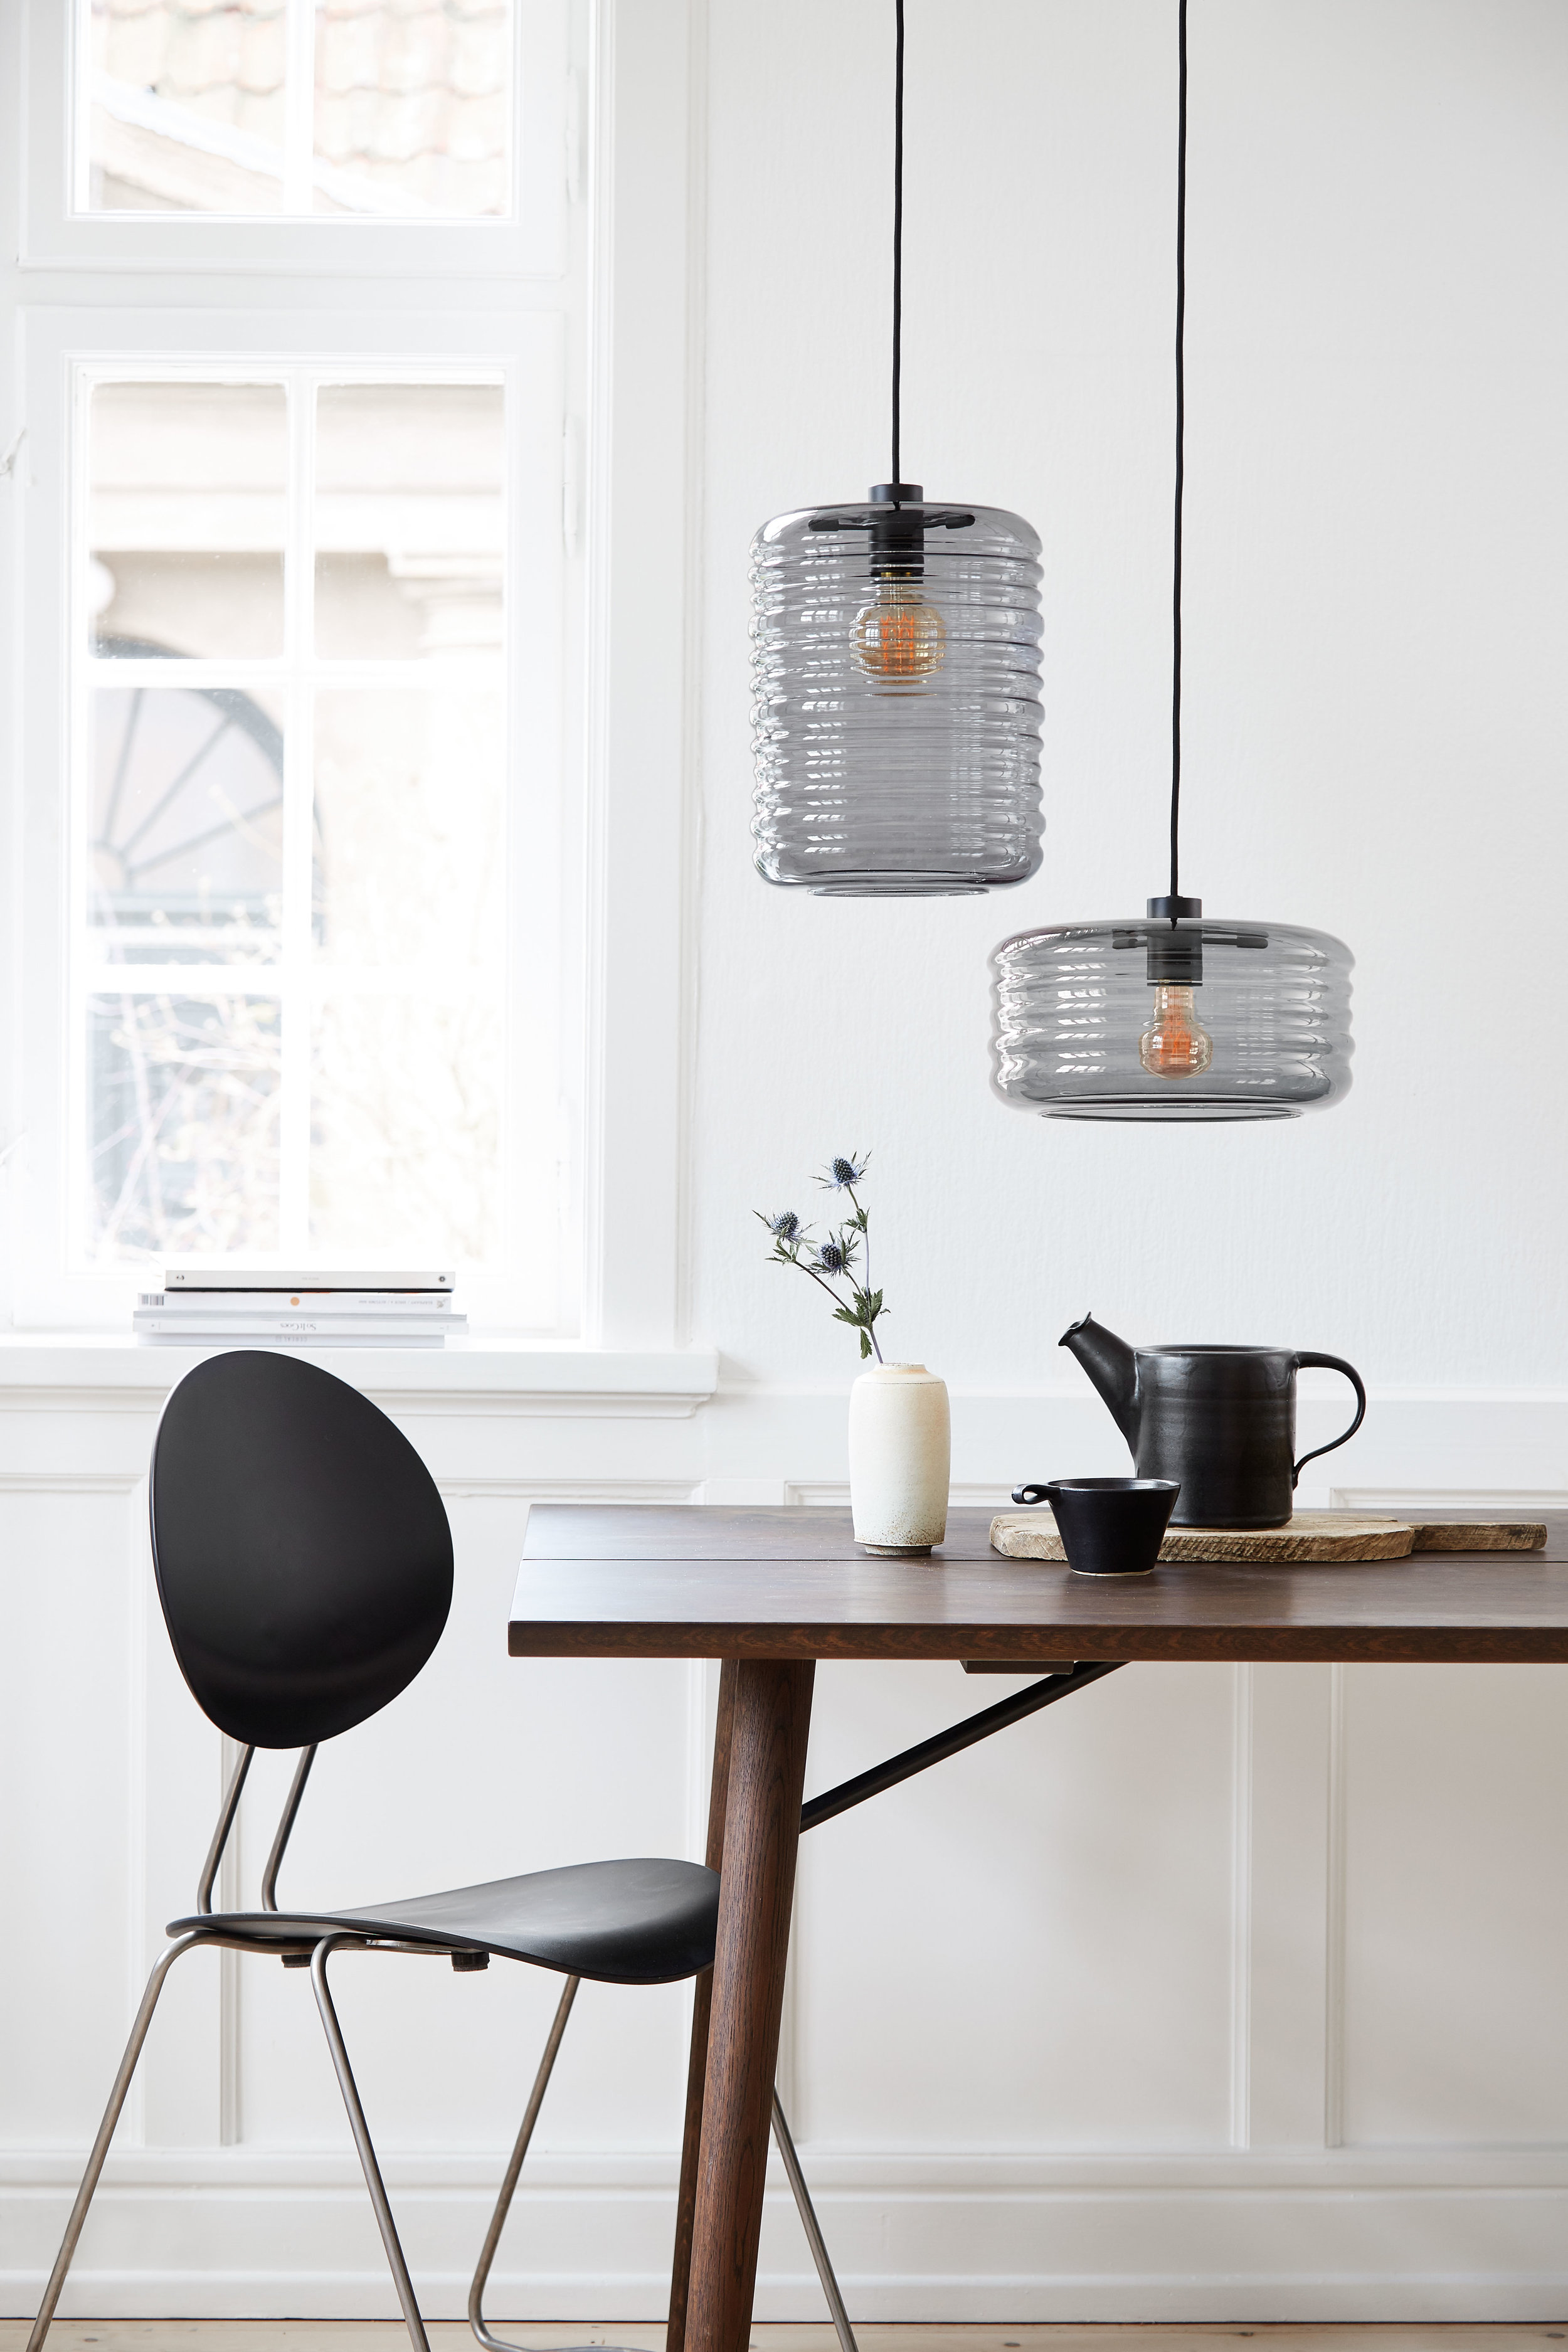 Coloured glass, one of this year's strongest trends, strikes a lovely, slightly solemn atmosphere in the home. The new Wheels lamp series from Frandsen Retail is no exception, bringing light and warmth into the home with its smoked glass shades.